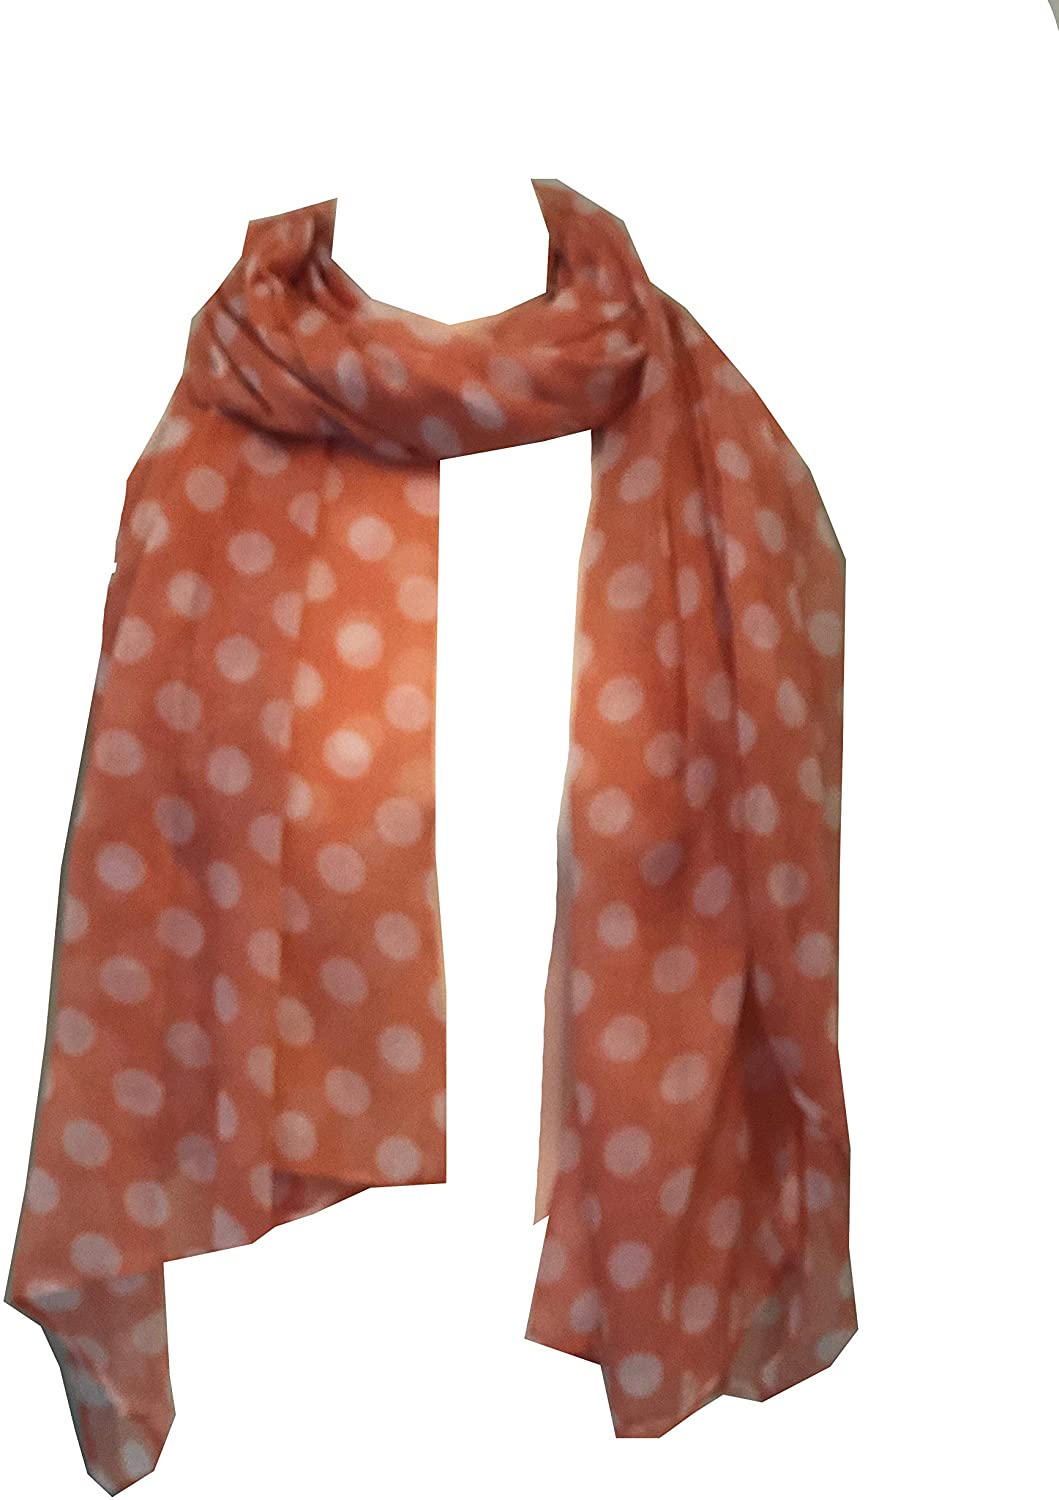 Pamper Yourself Now Peach with White Big spot Scarf/wrap